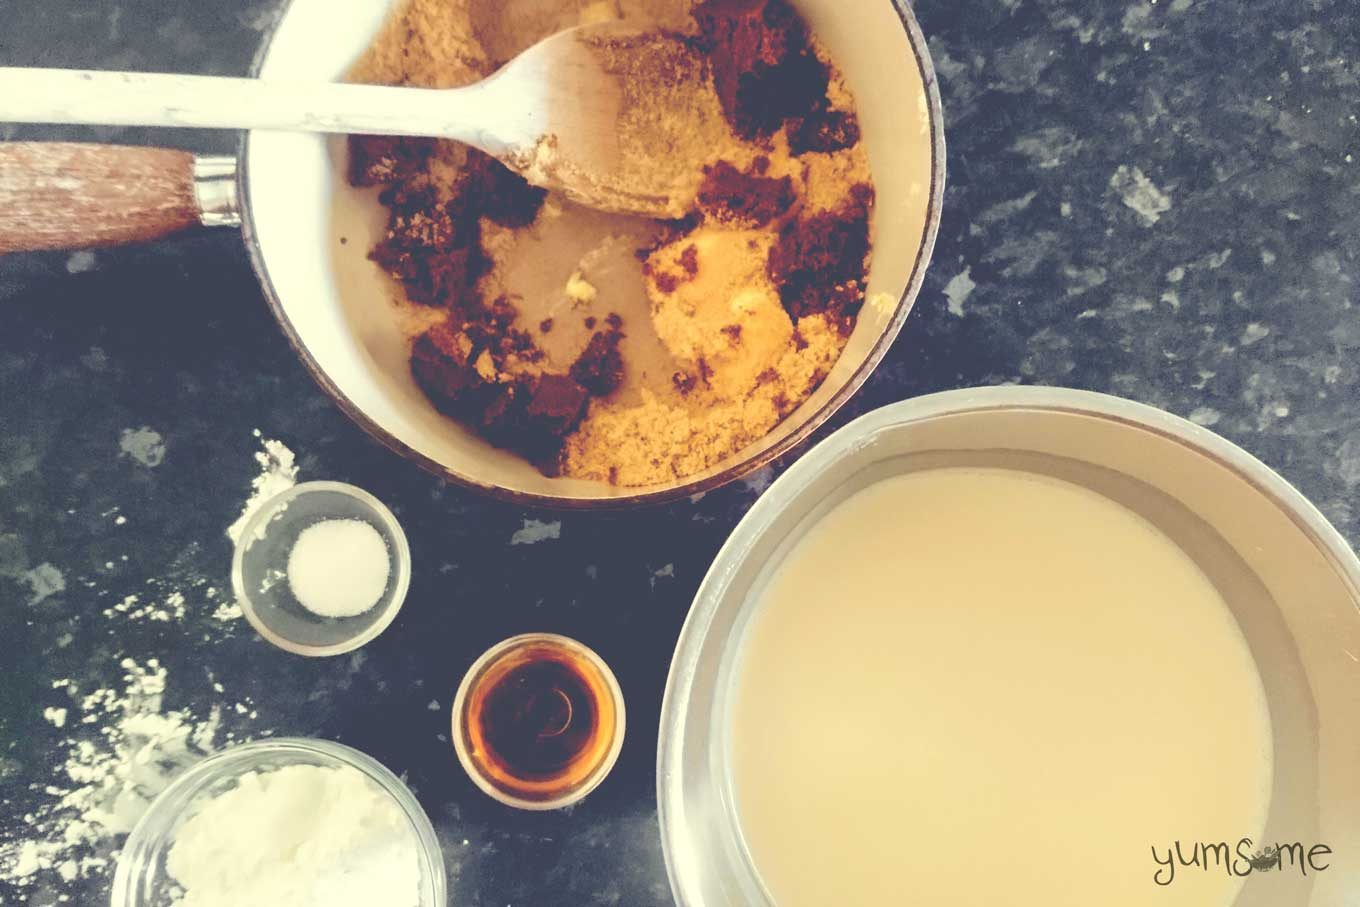 Ingredients for vegan butterscotch pudding.